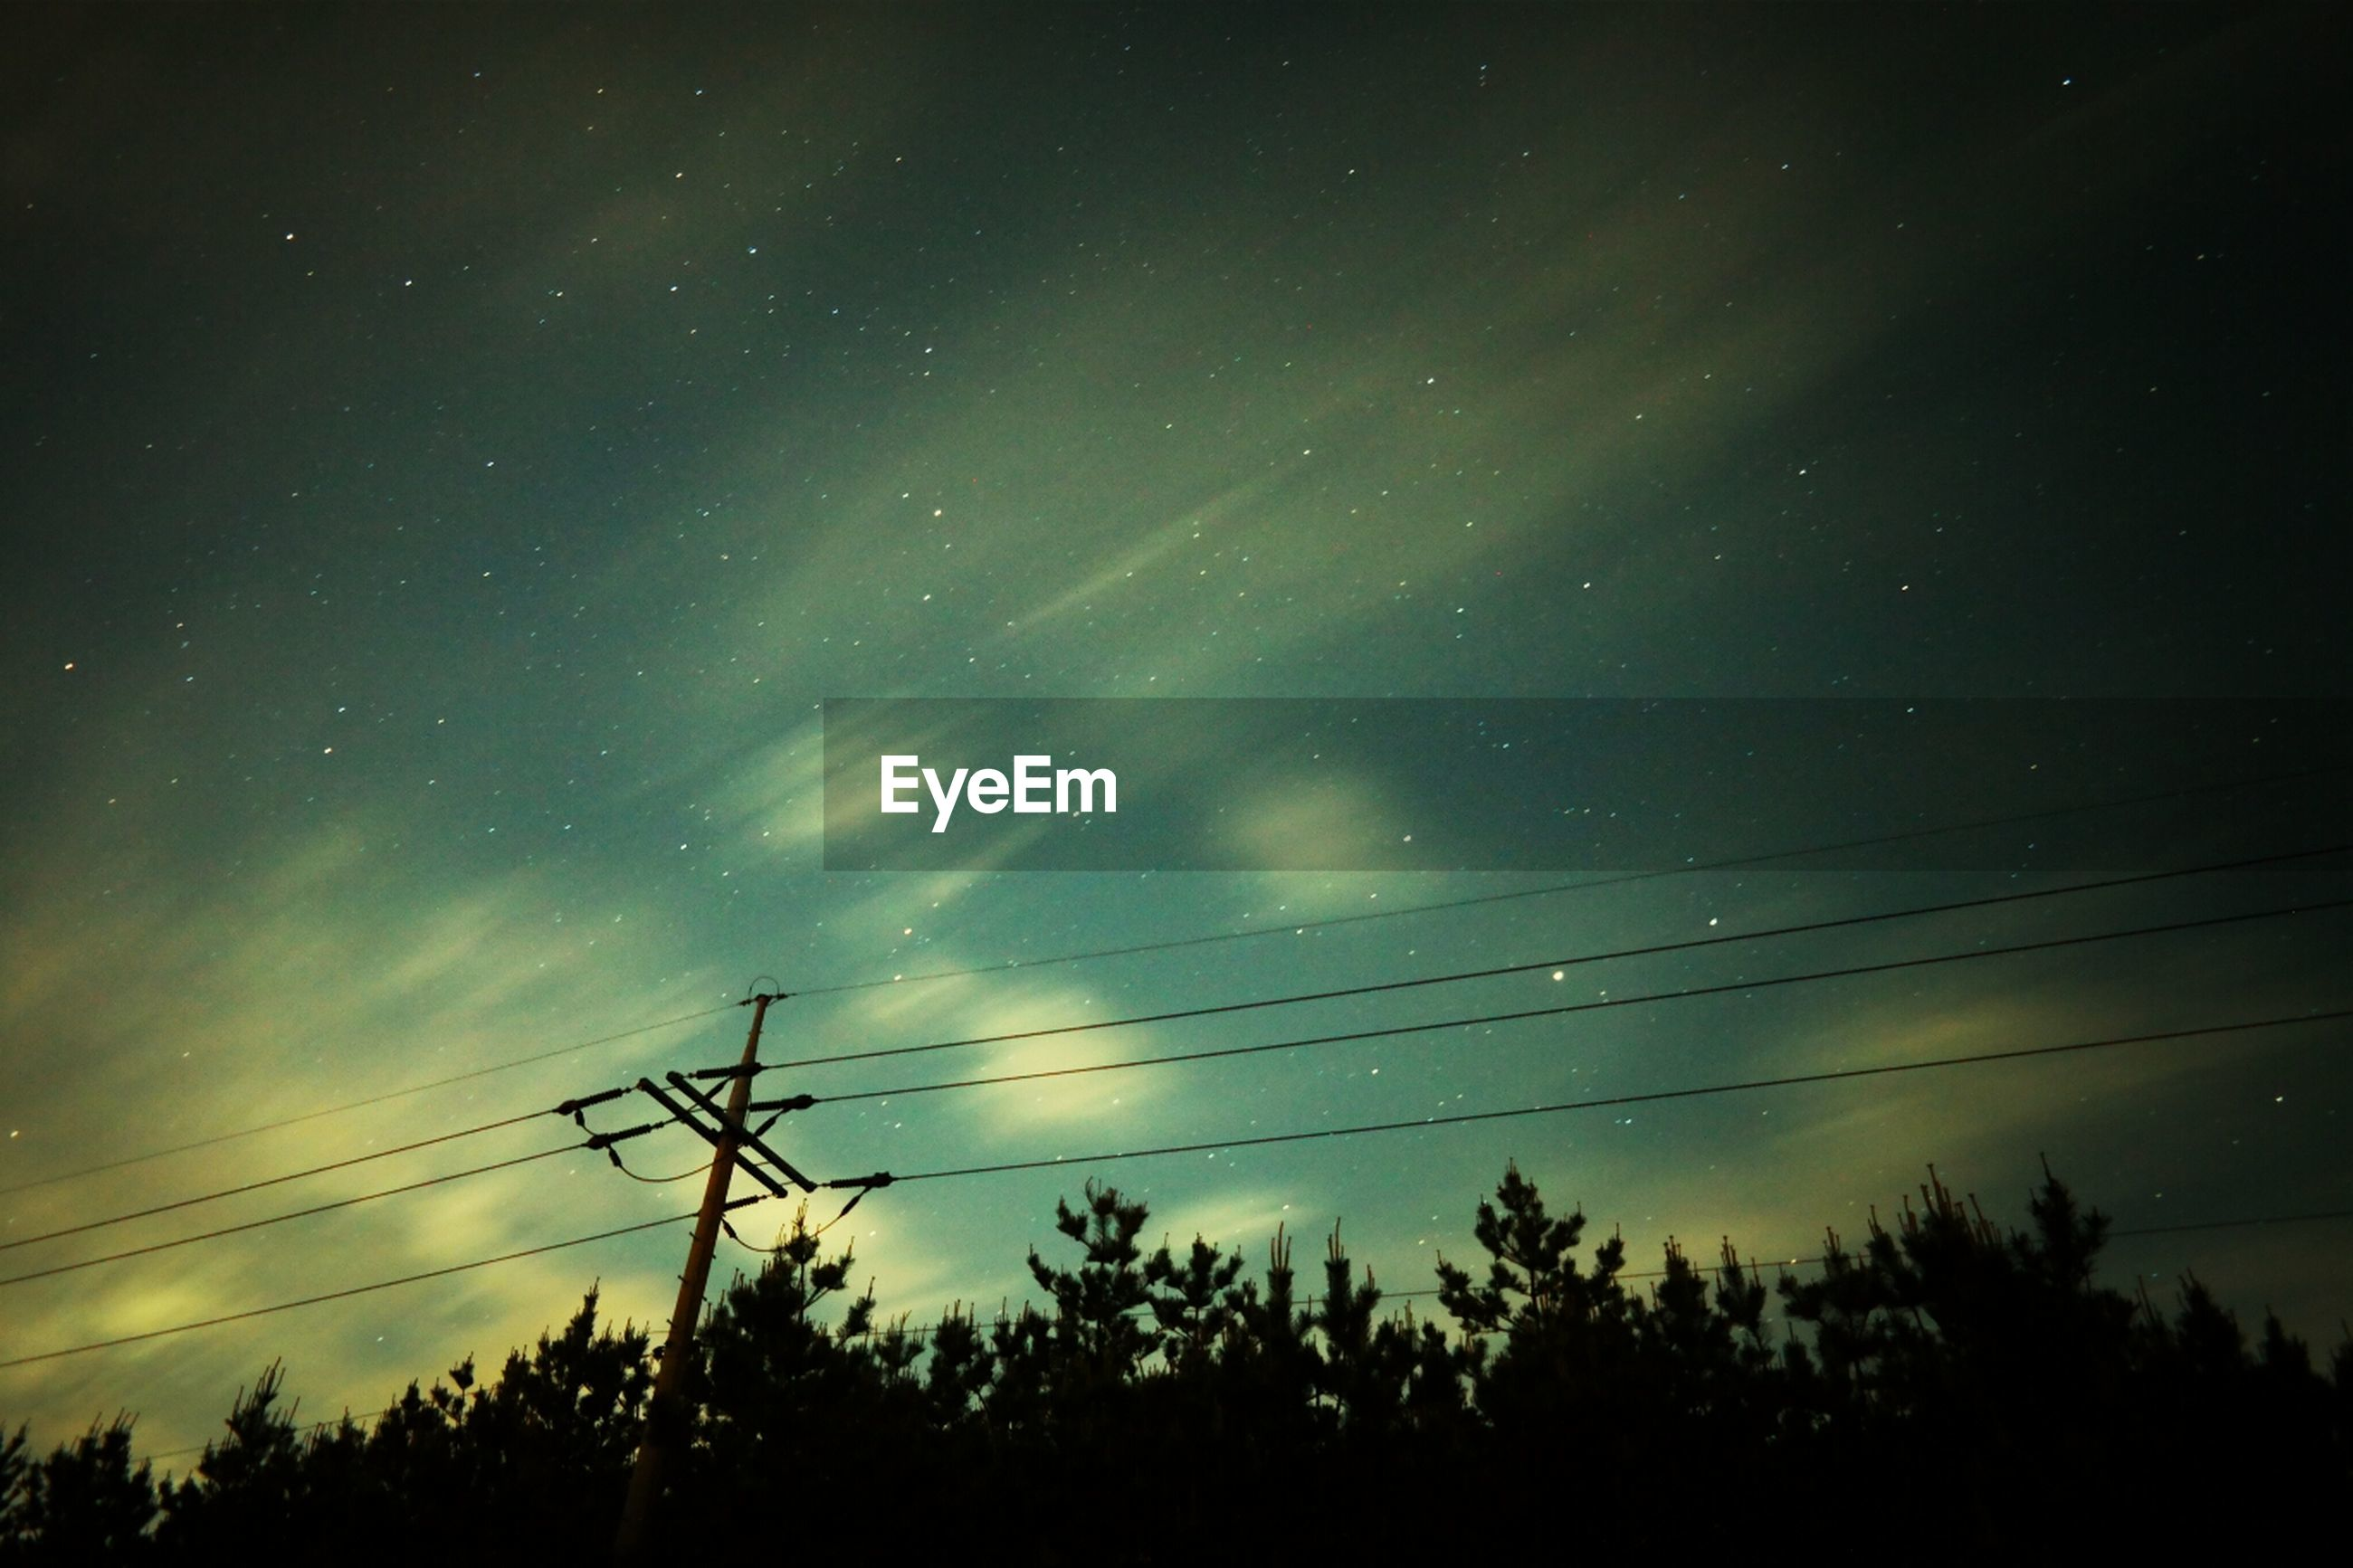 silhouette, low angle view, sky, scenics, power line, tranquility, tree, tranquil scene, beauty in nature, night, astronomy, nature, electricity, star - space, power supply, electricity pylon, cable, idyllic, connection, star field